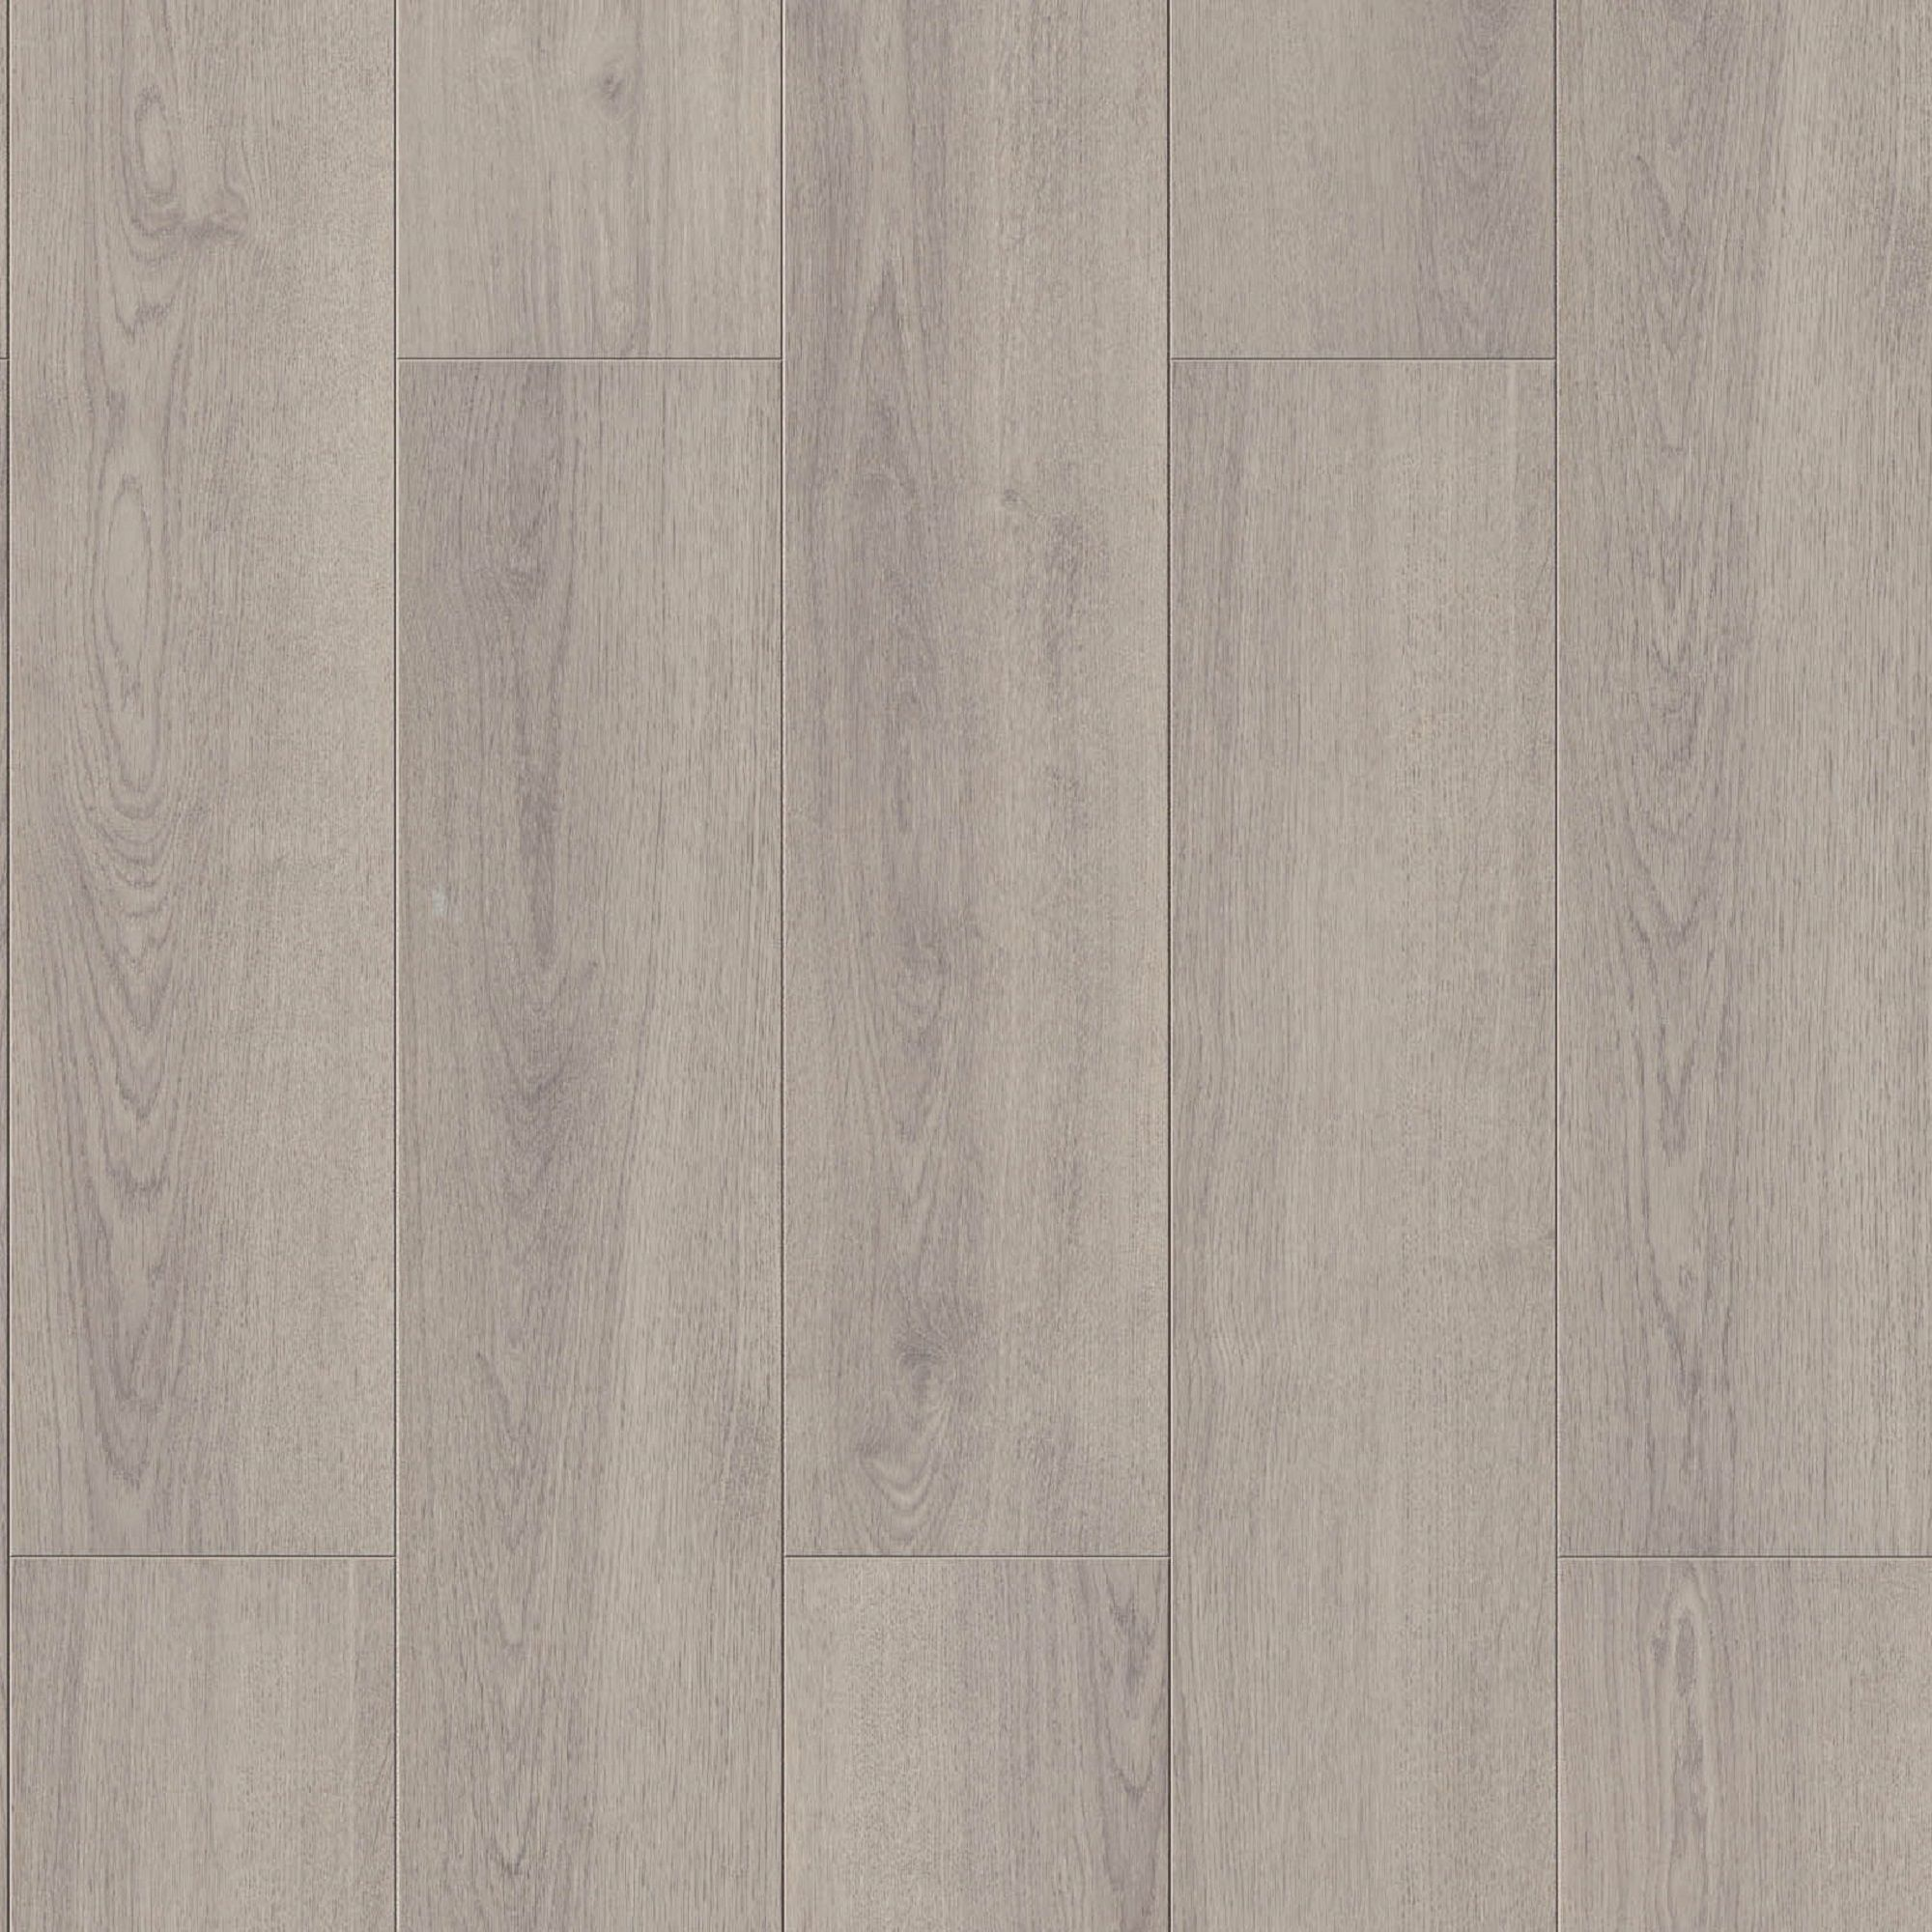 Greenlees Grey Oak Effect Laminate Flooring 1 99m² Pack